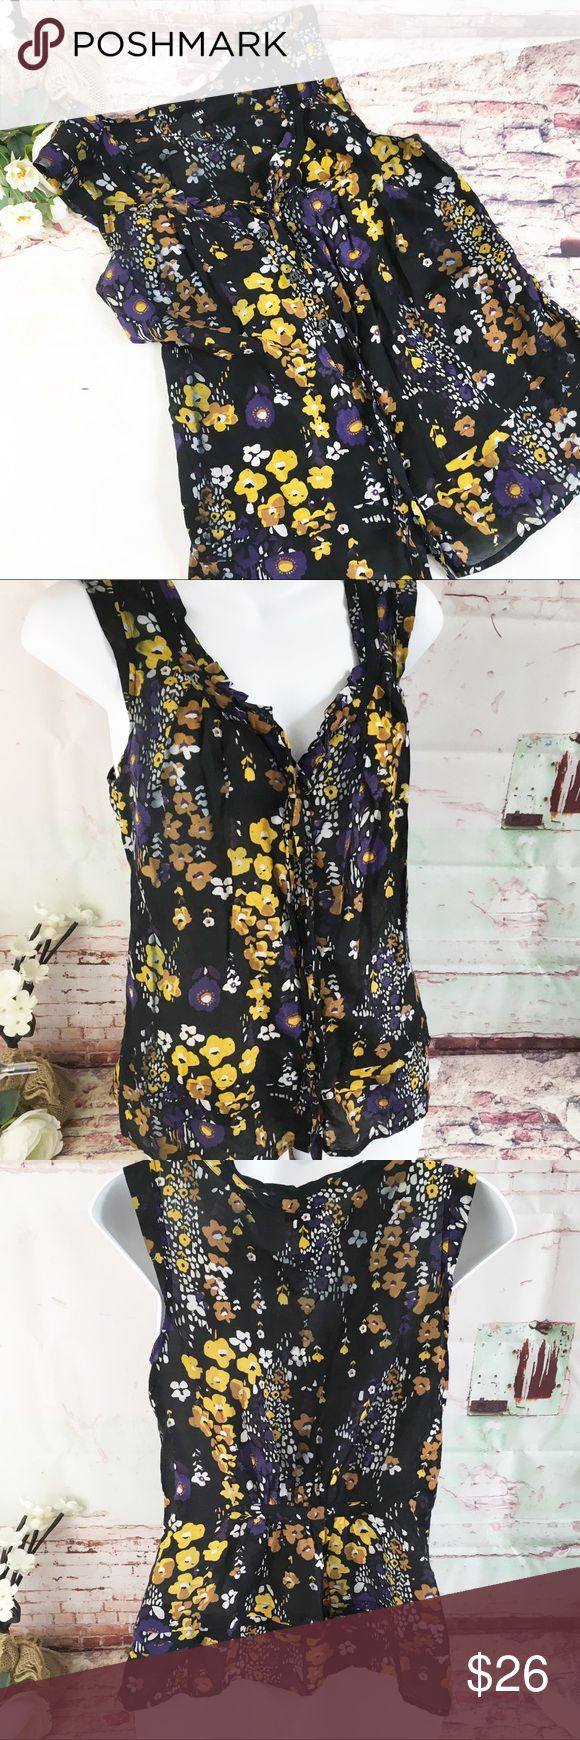 H&M Purple Floral Tie Top, Size 8 H&M Purple Floral Tie Top, Size 8.  Sleeveless, buttons down front with tie at top button.  LIKE NEW H&M Tops